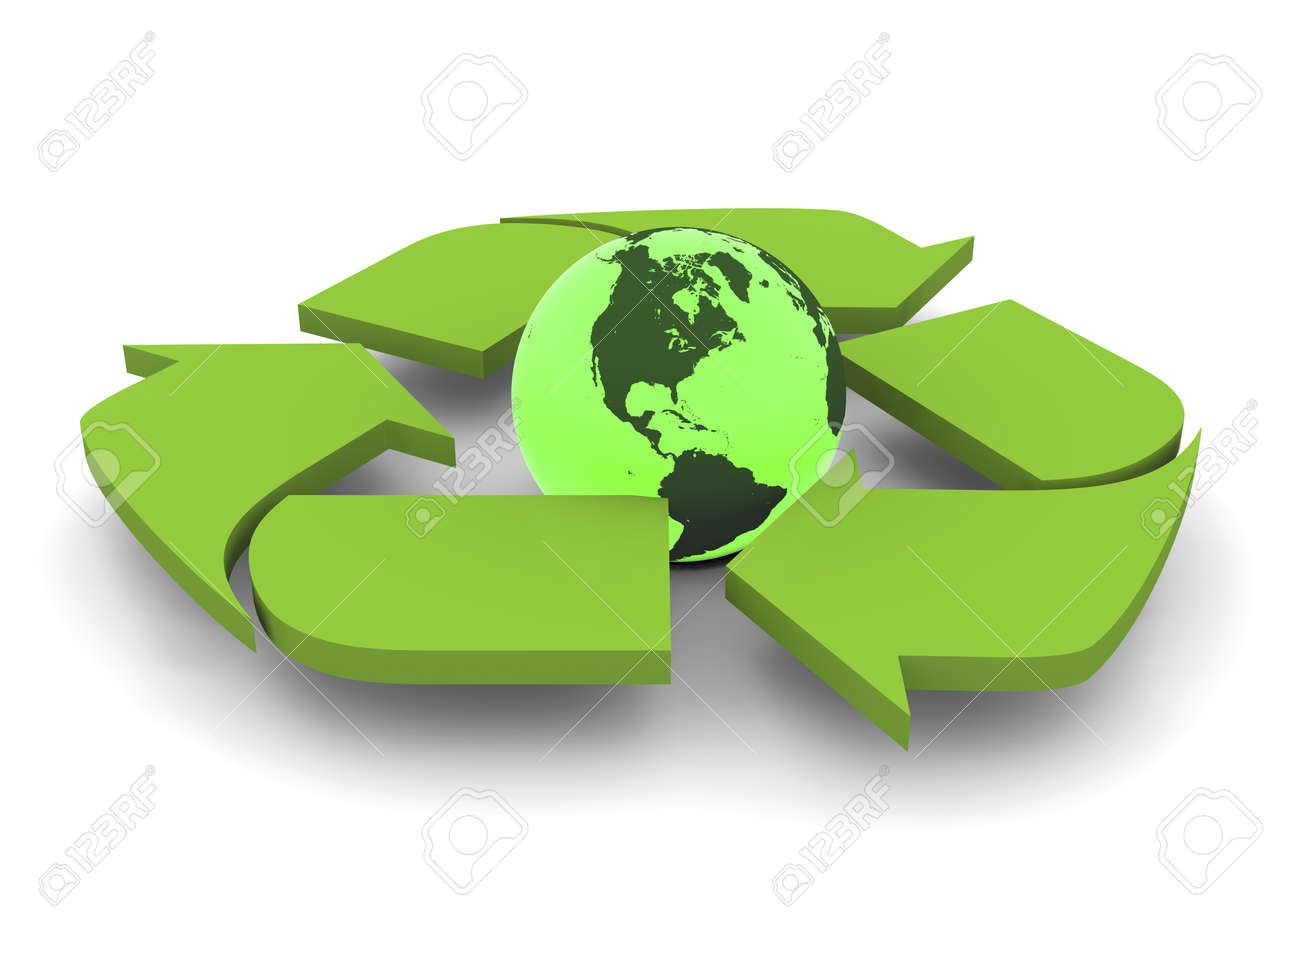 Glowing Green Planet Earth Inside Recycling Symbol Concept Of Diagram Conservation Isolated On White Background